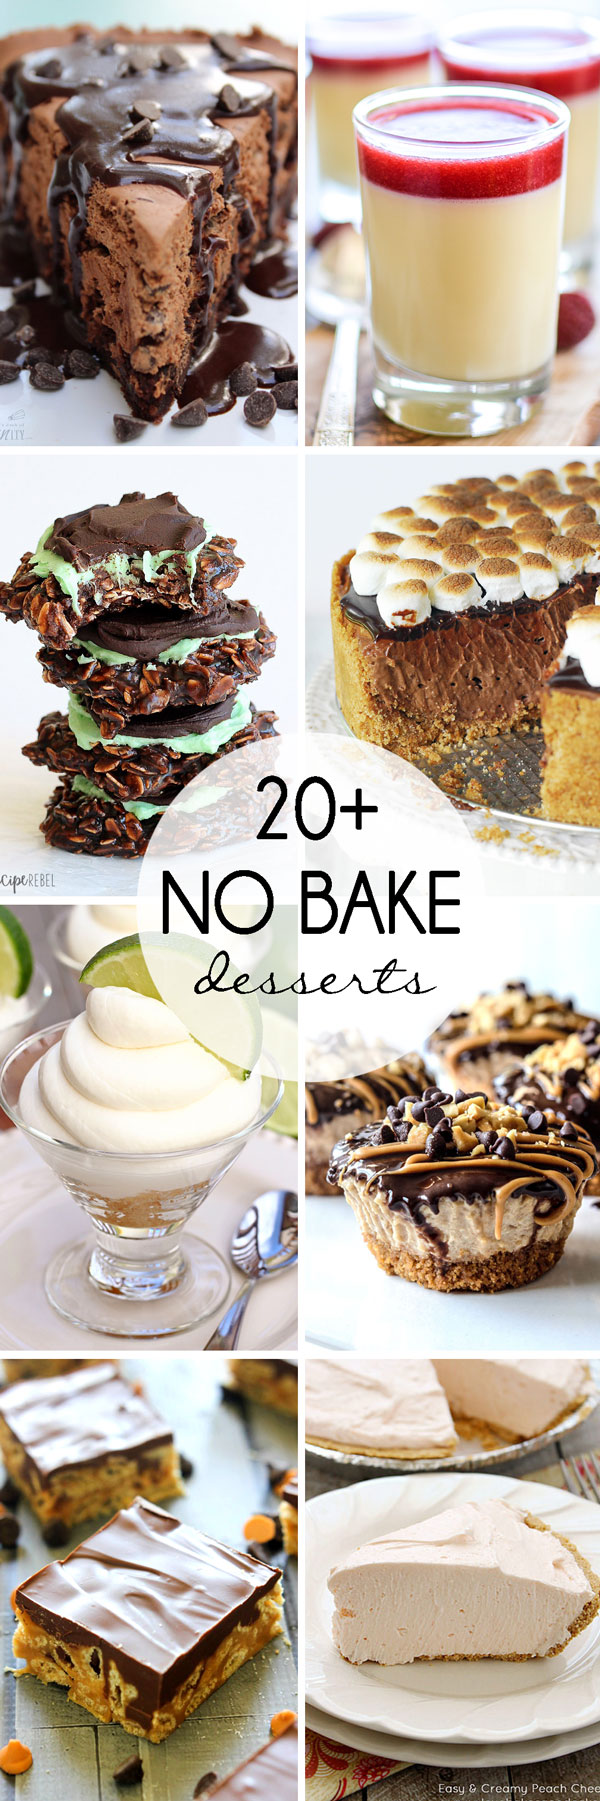 20+ No Bake Desserts | White Lights on Wednesday